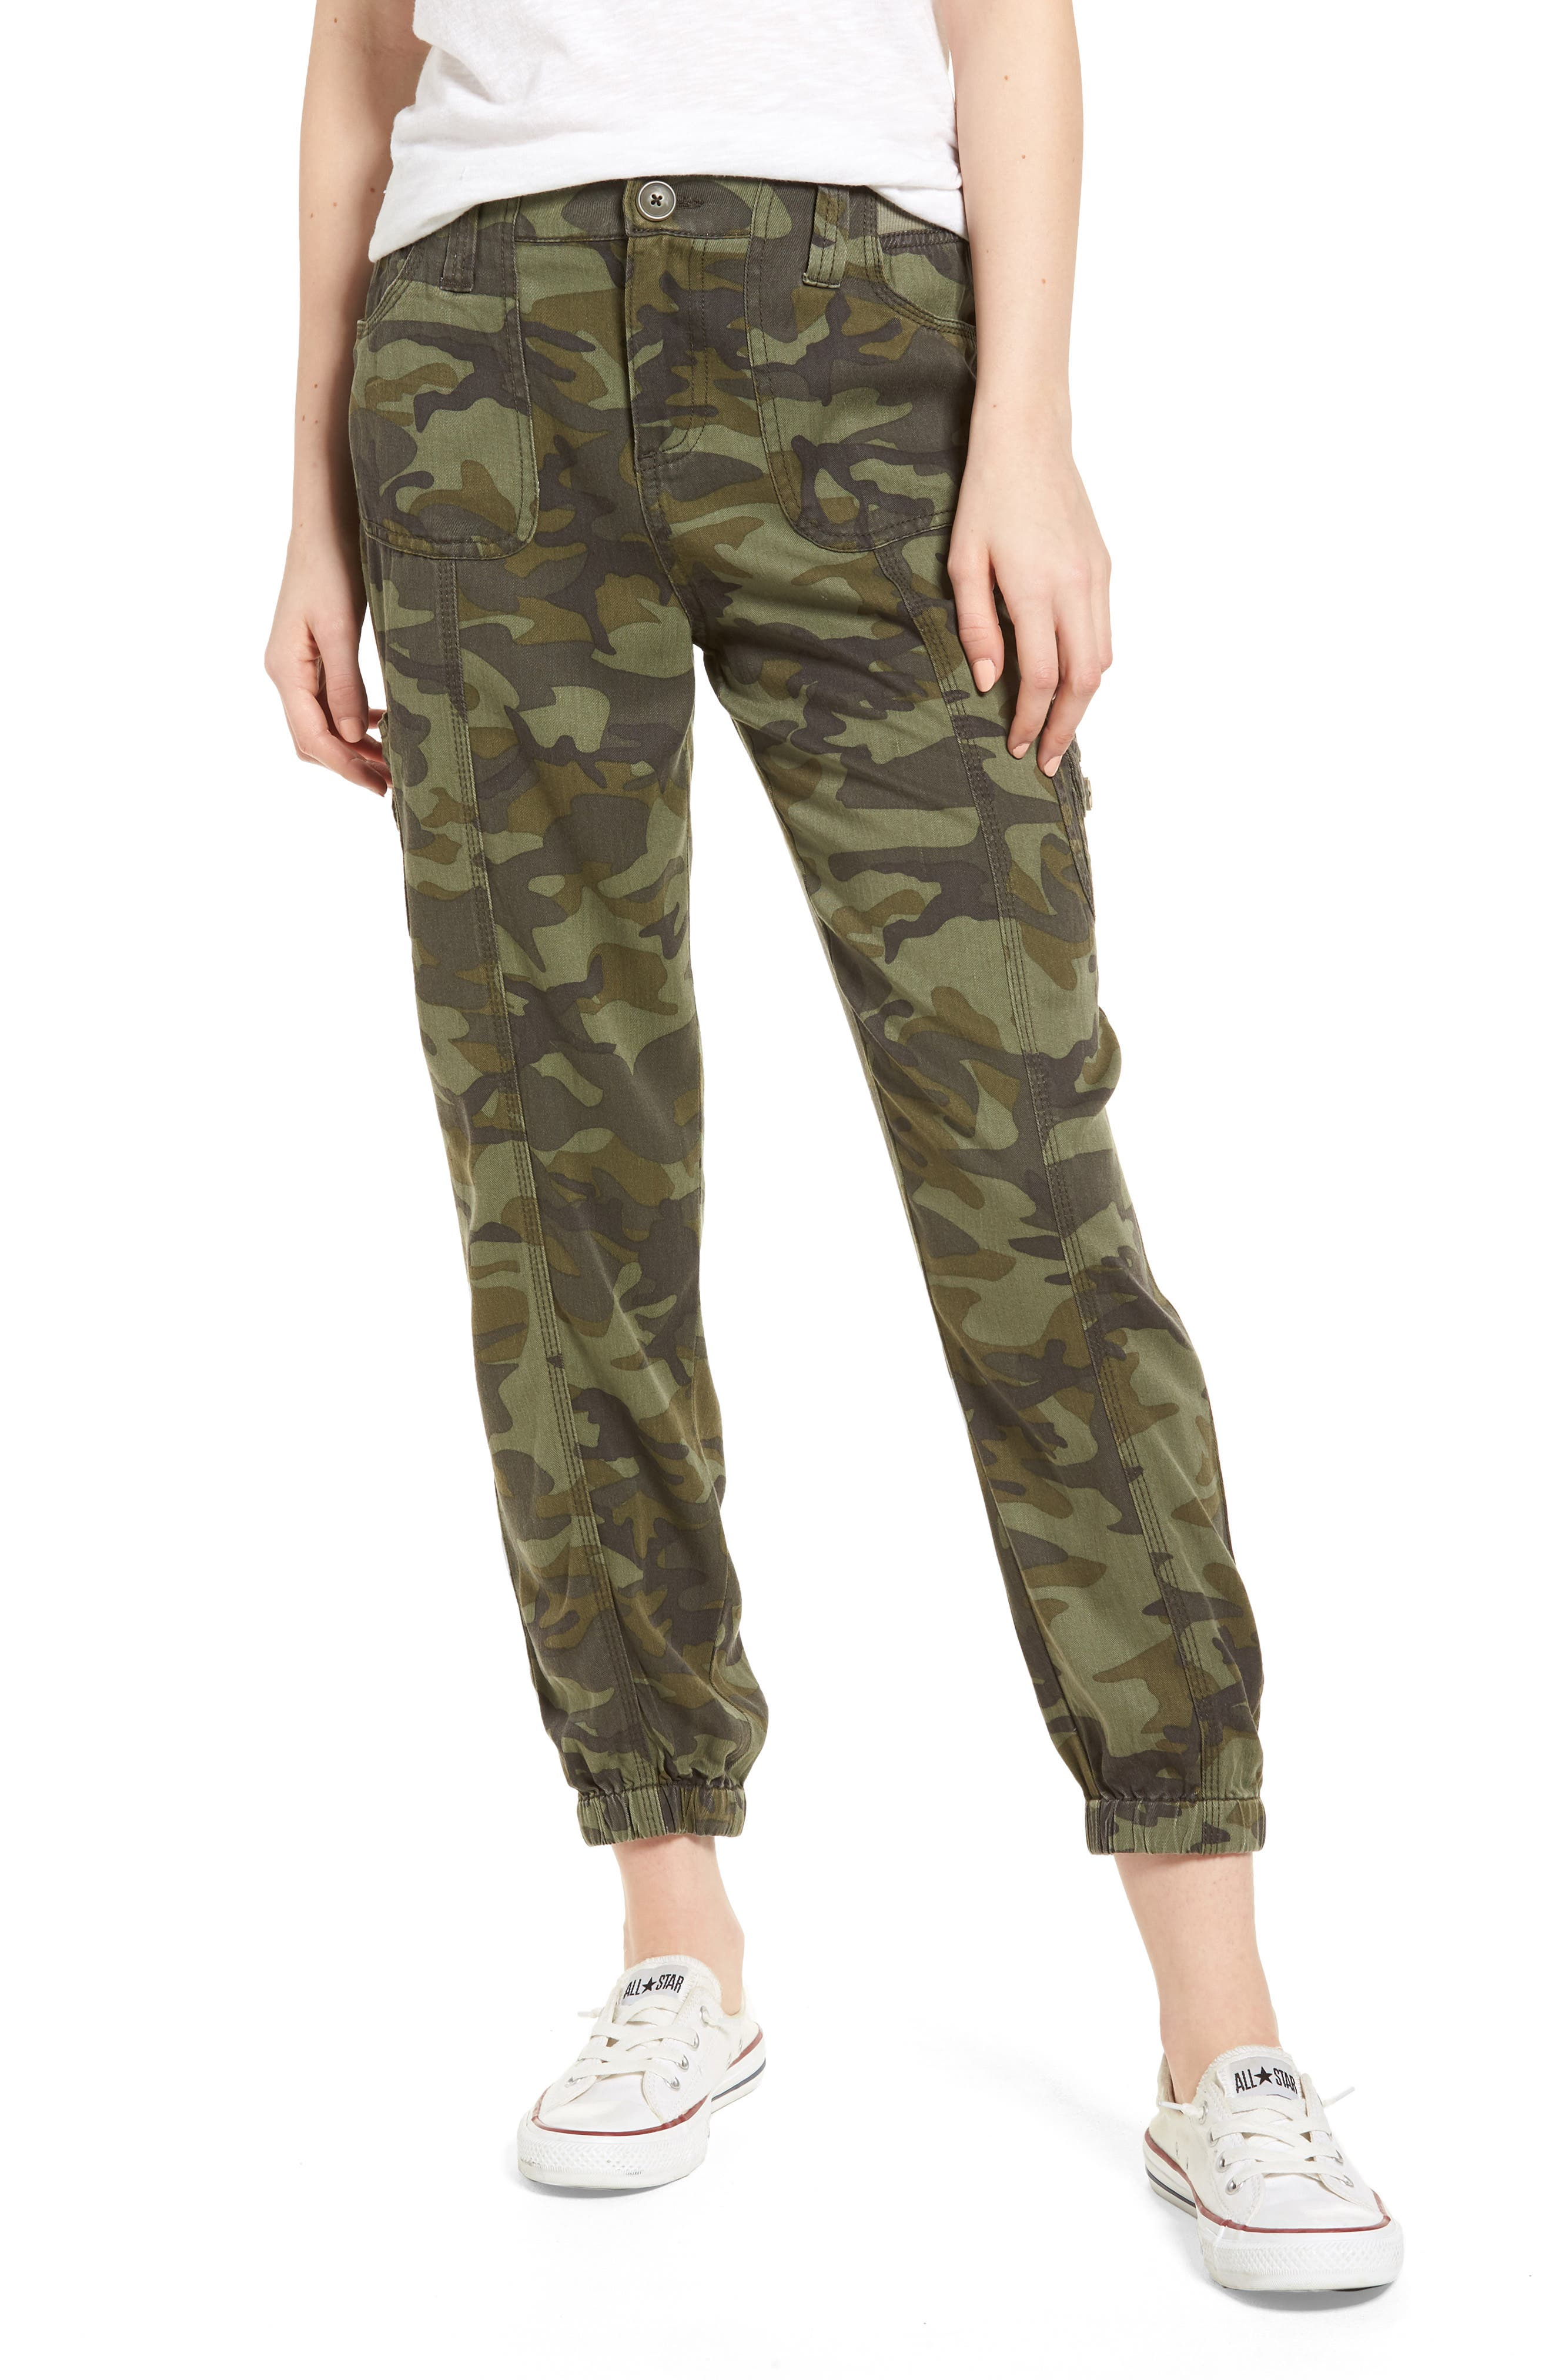 Alternate Image 1 Selected - Love, Fire Camo Print Cargo Pants